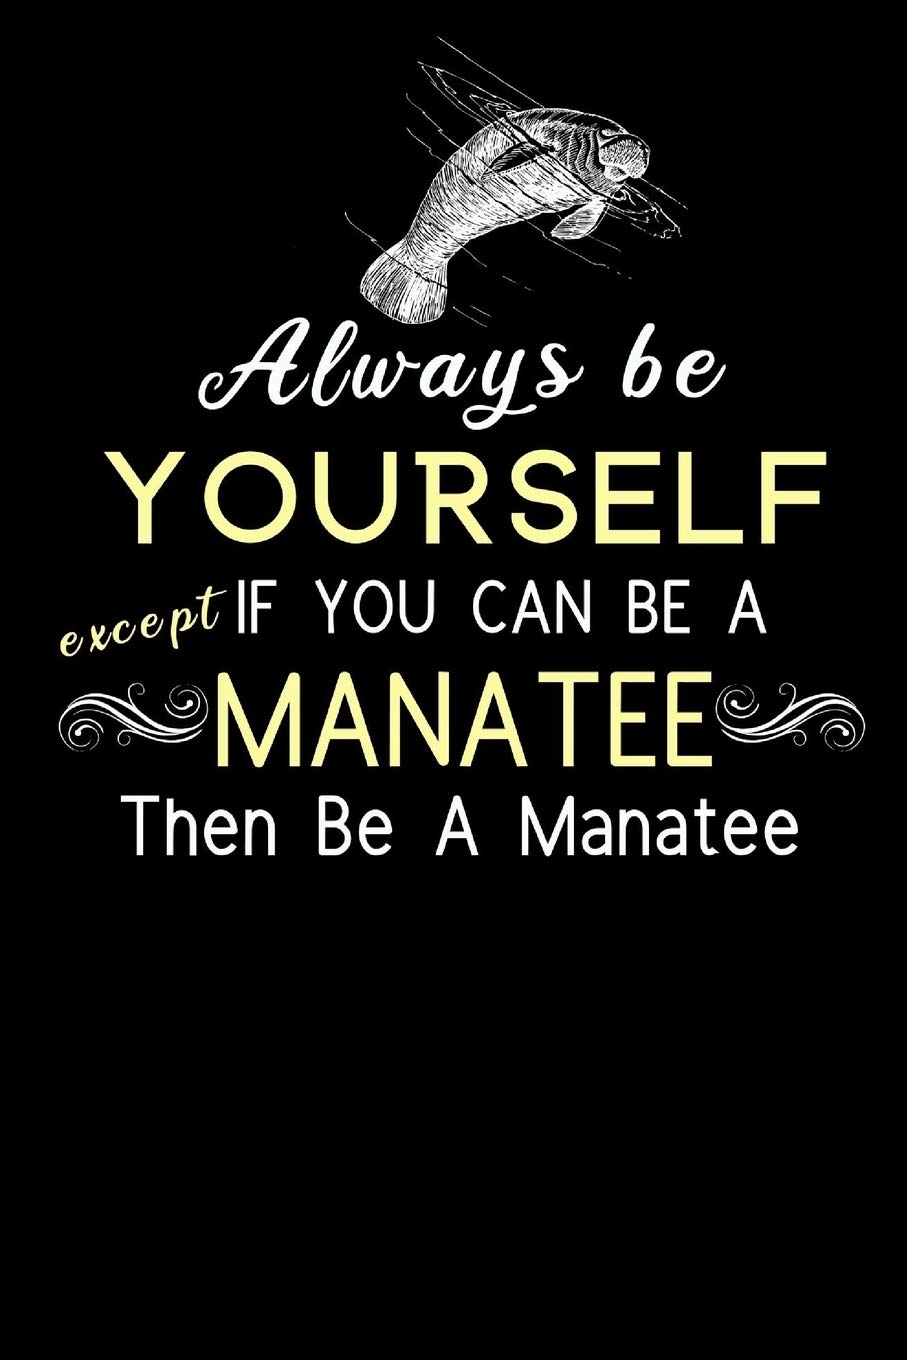 Always Be Yourself Except If You Can Be A Manatee Then Be A Manatee: Motivational Quote Gift  Funny Novelty Manatee Themed Gift   Birthday Gifts for ...   Lined Journal to take down notes